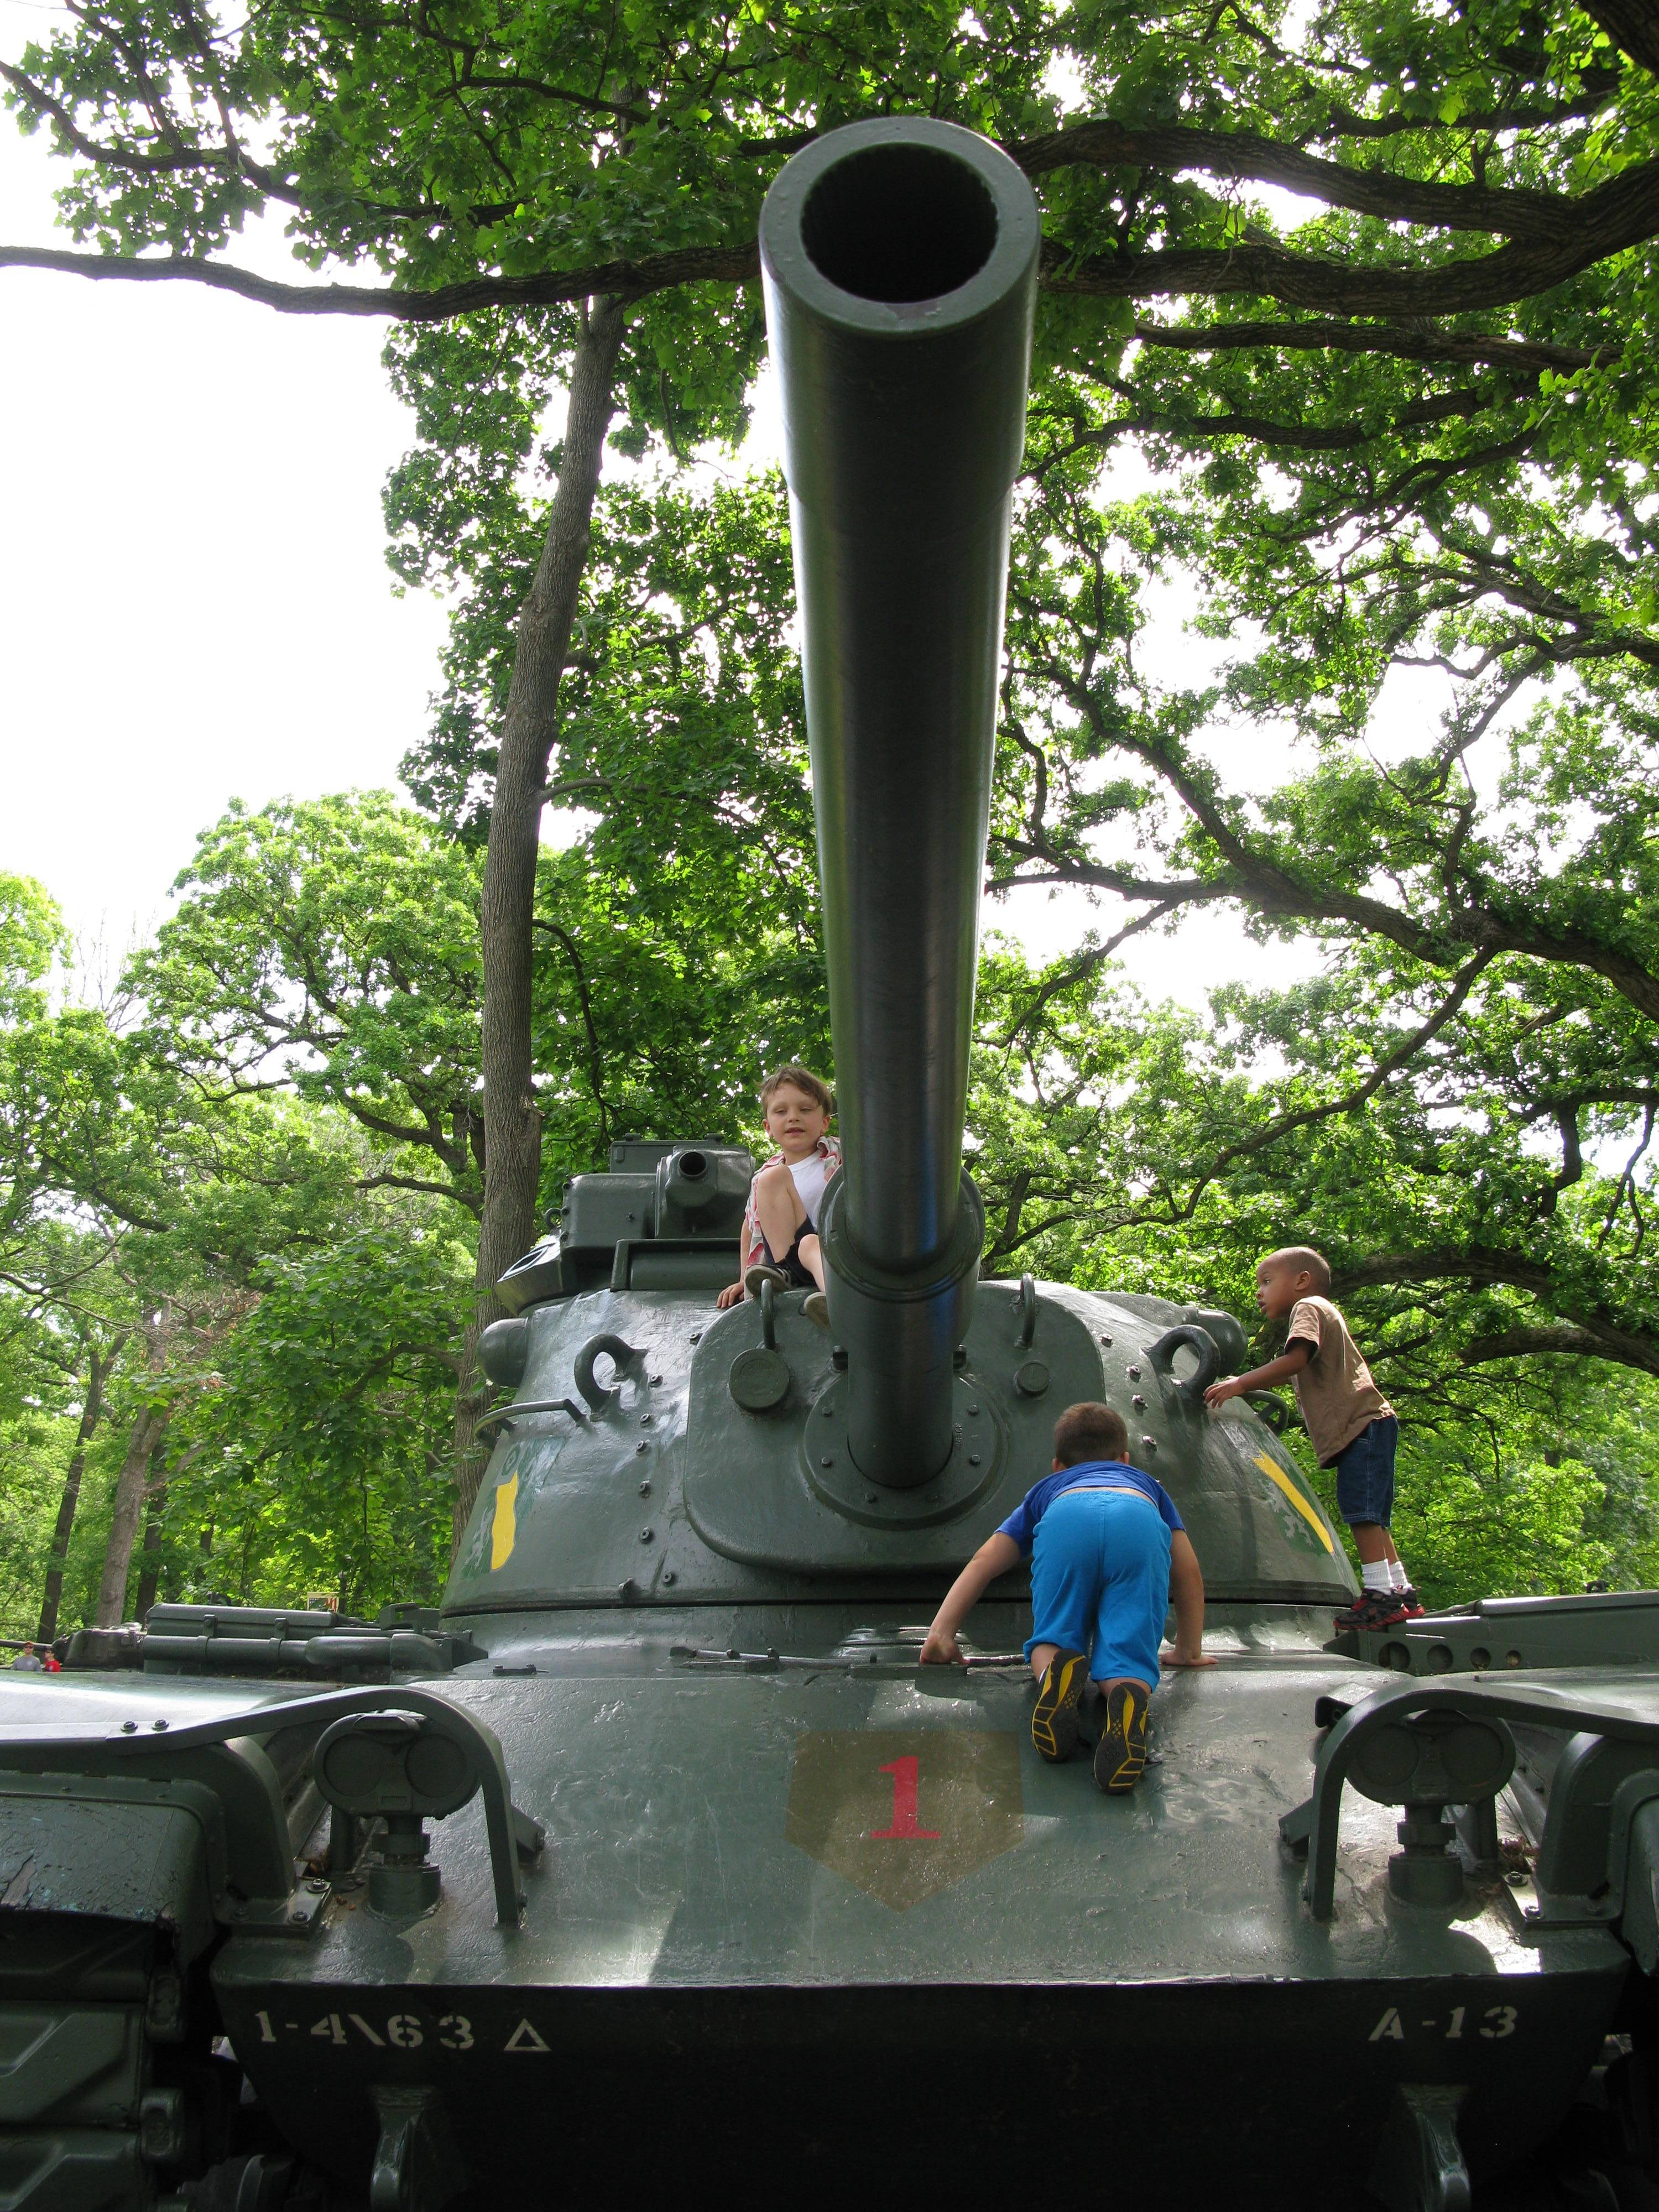 From left, William Hughes, 6, of Chicago, and brothers Cole, 5, and Miles Heerema, 4, of Oakbrook Terrace, climb up a tank Saturday at Cantigny Park in Wheaton where visitors marked the 70th anniversary commemoration of D-Day, the Allied invasion of France during World War II.